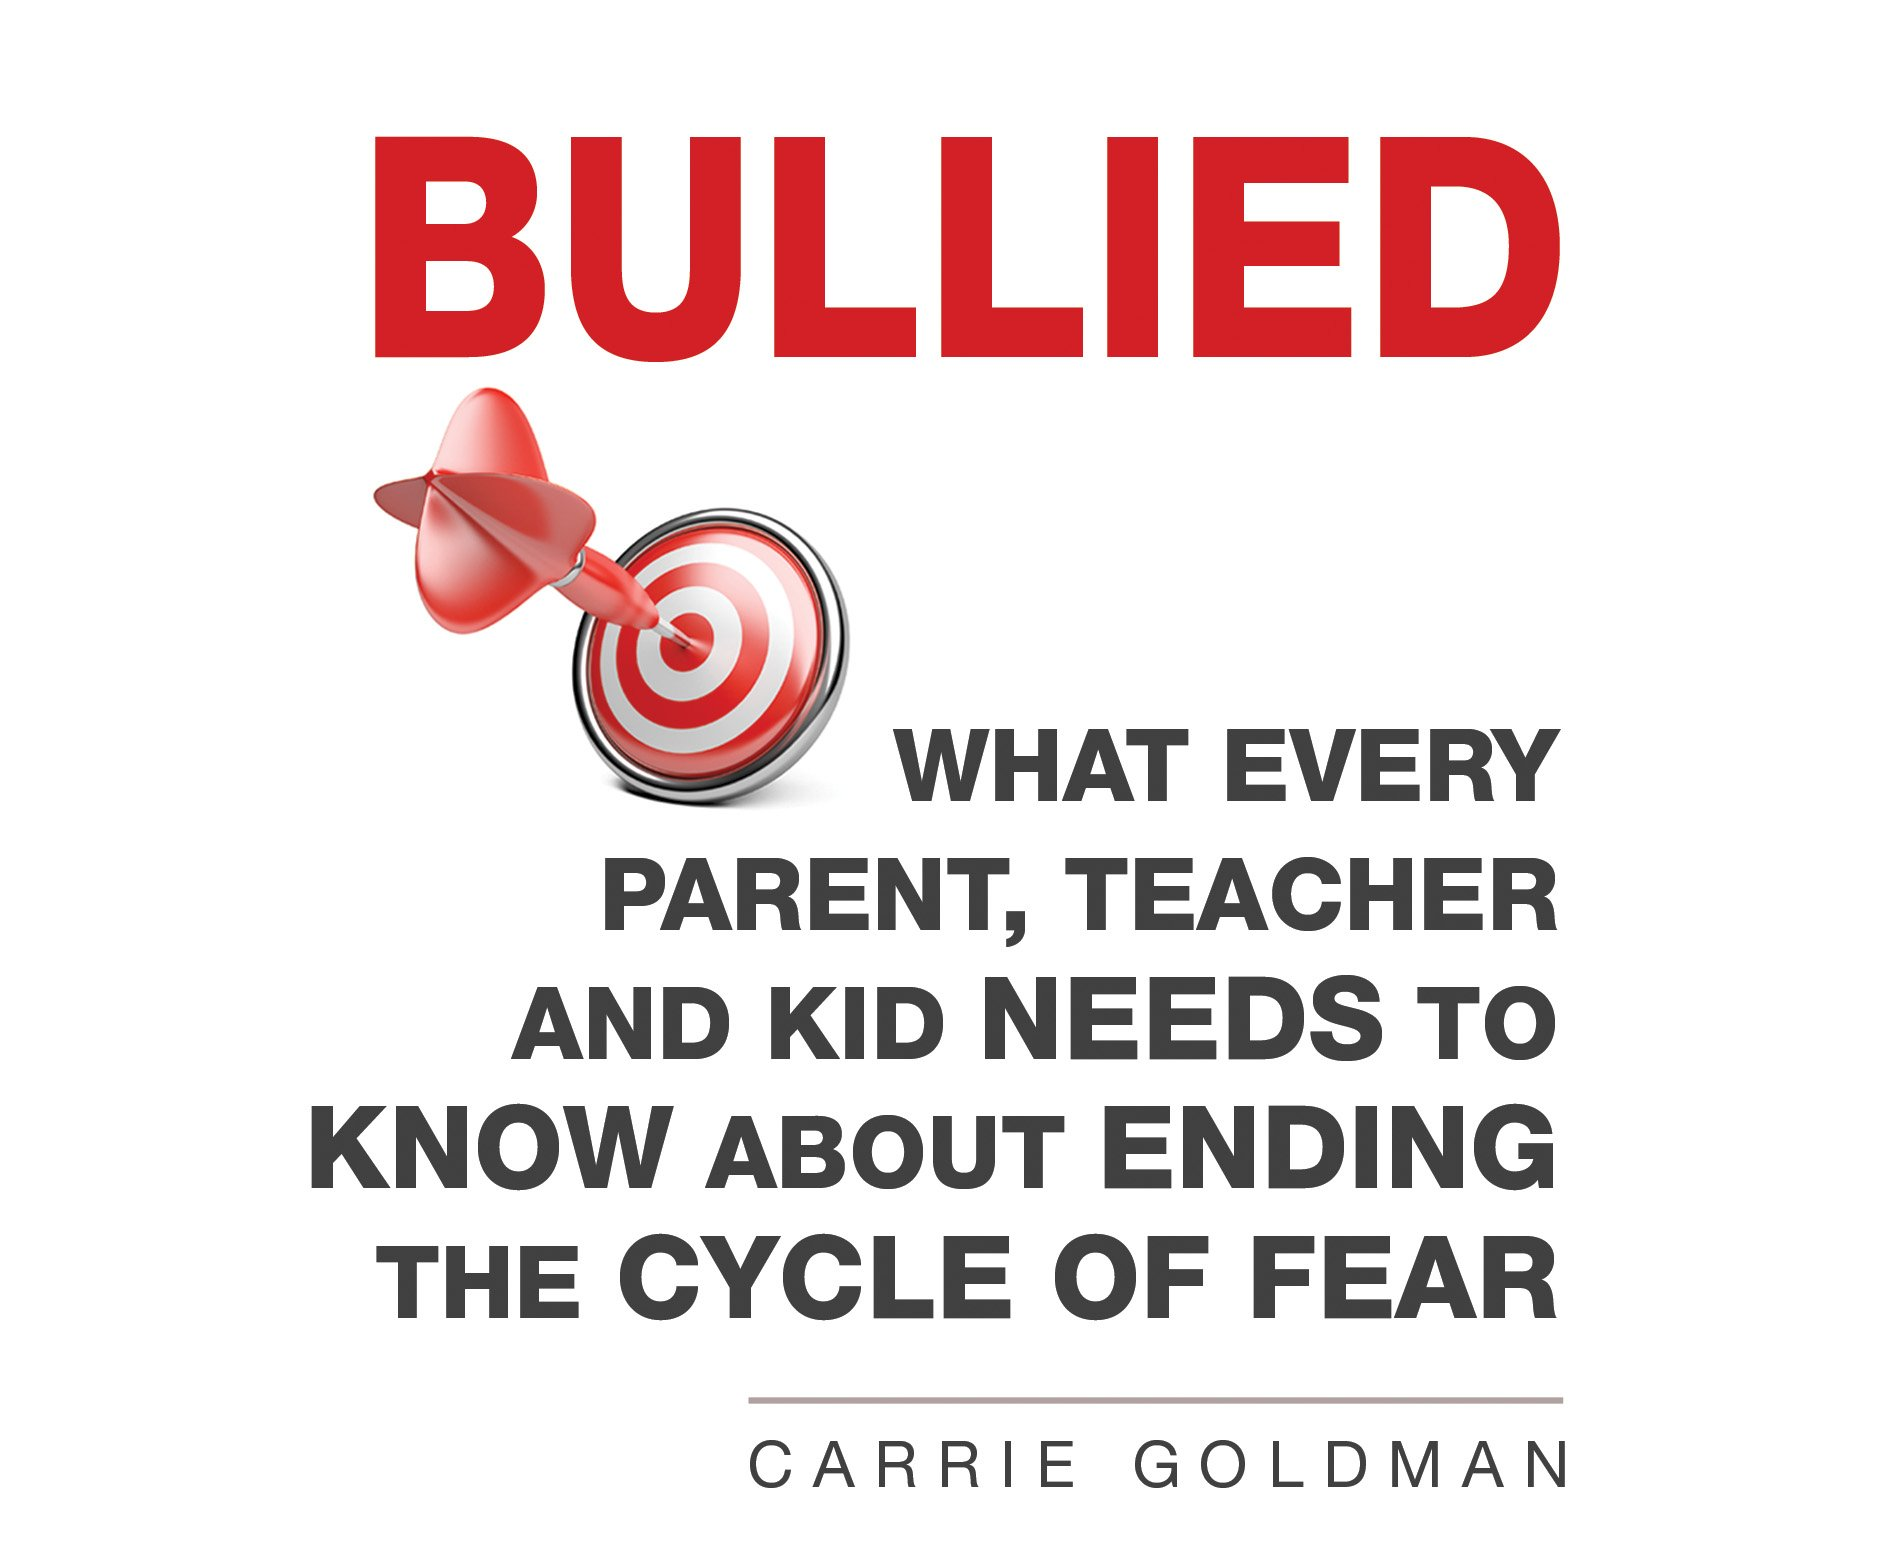 Download Bullied: What Every Parent, Teacher, and Kid Needs to Know About ending the Cycle of Fear ebook